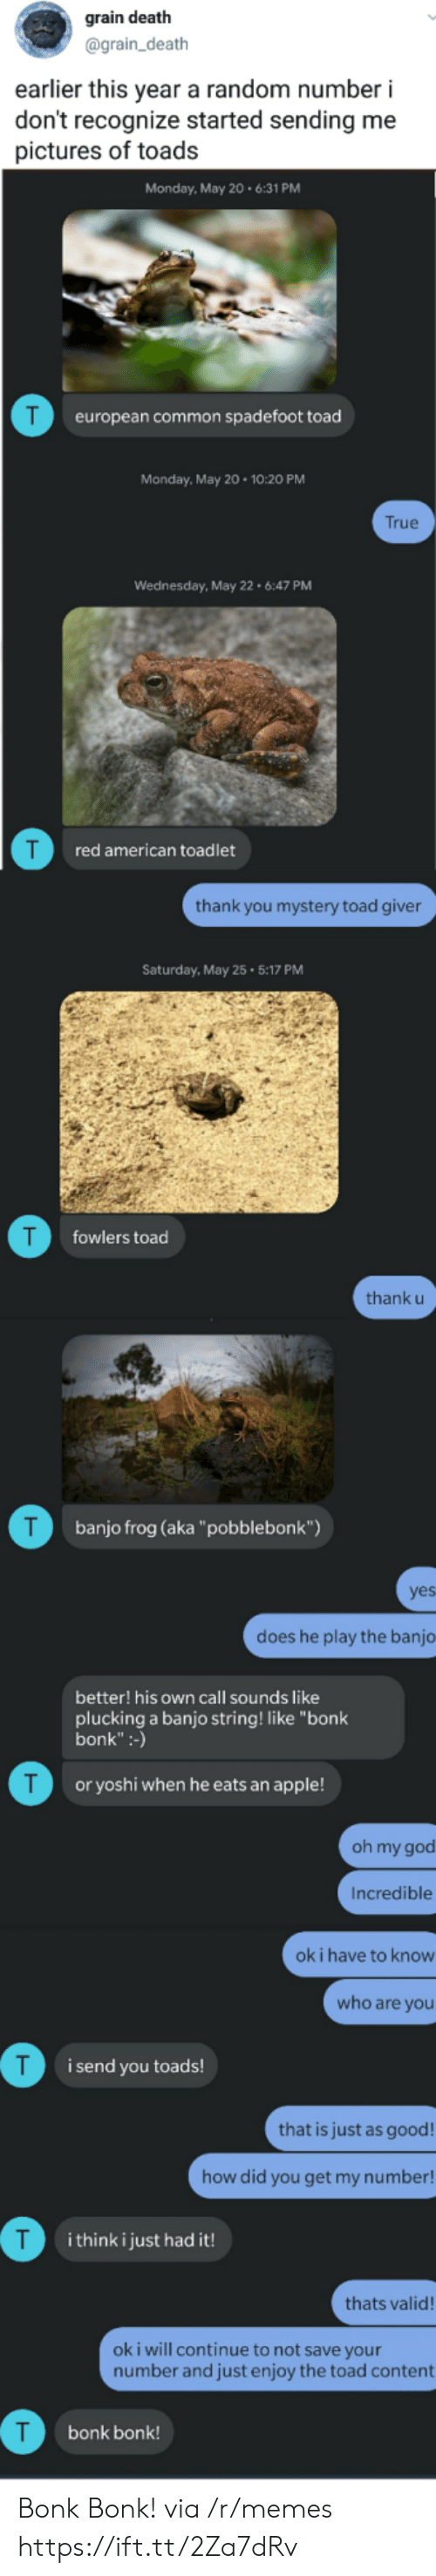 "toads: grain death  @grain_death  earlier this year a random number i  don't recognize started sending me  pictures of toads  Monday, May 20.6:31 PM  T  european common spadefoot toad  Monday, May 20 10:20 PM  True  Wednesday, May 22 6:47 PM  red american toadlet  thank you mystery toad giver  Saturday, May 25 5:17 PM  T  fowlers toad  thank u  T  banjo frog (aka""pobblebonk"")  yes  does he play the banjo  better! his own call sounds like  plucking a banjo string! like ""bonk  bonk"":-)  T  or yoshi when he eats an apple!  oh my god  Incredible  ok i have to know  who are you  i send you toads!  that is just as good!  how did you get my number!  T  i think i just had it!  thats valid!  oki will continue to not save your  number and just enjoy the toad content  bonk bonk! Bonk Bonk! via /r/memes https://ift.tt/2Za7dRv"